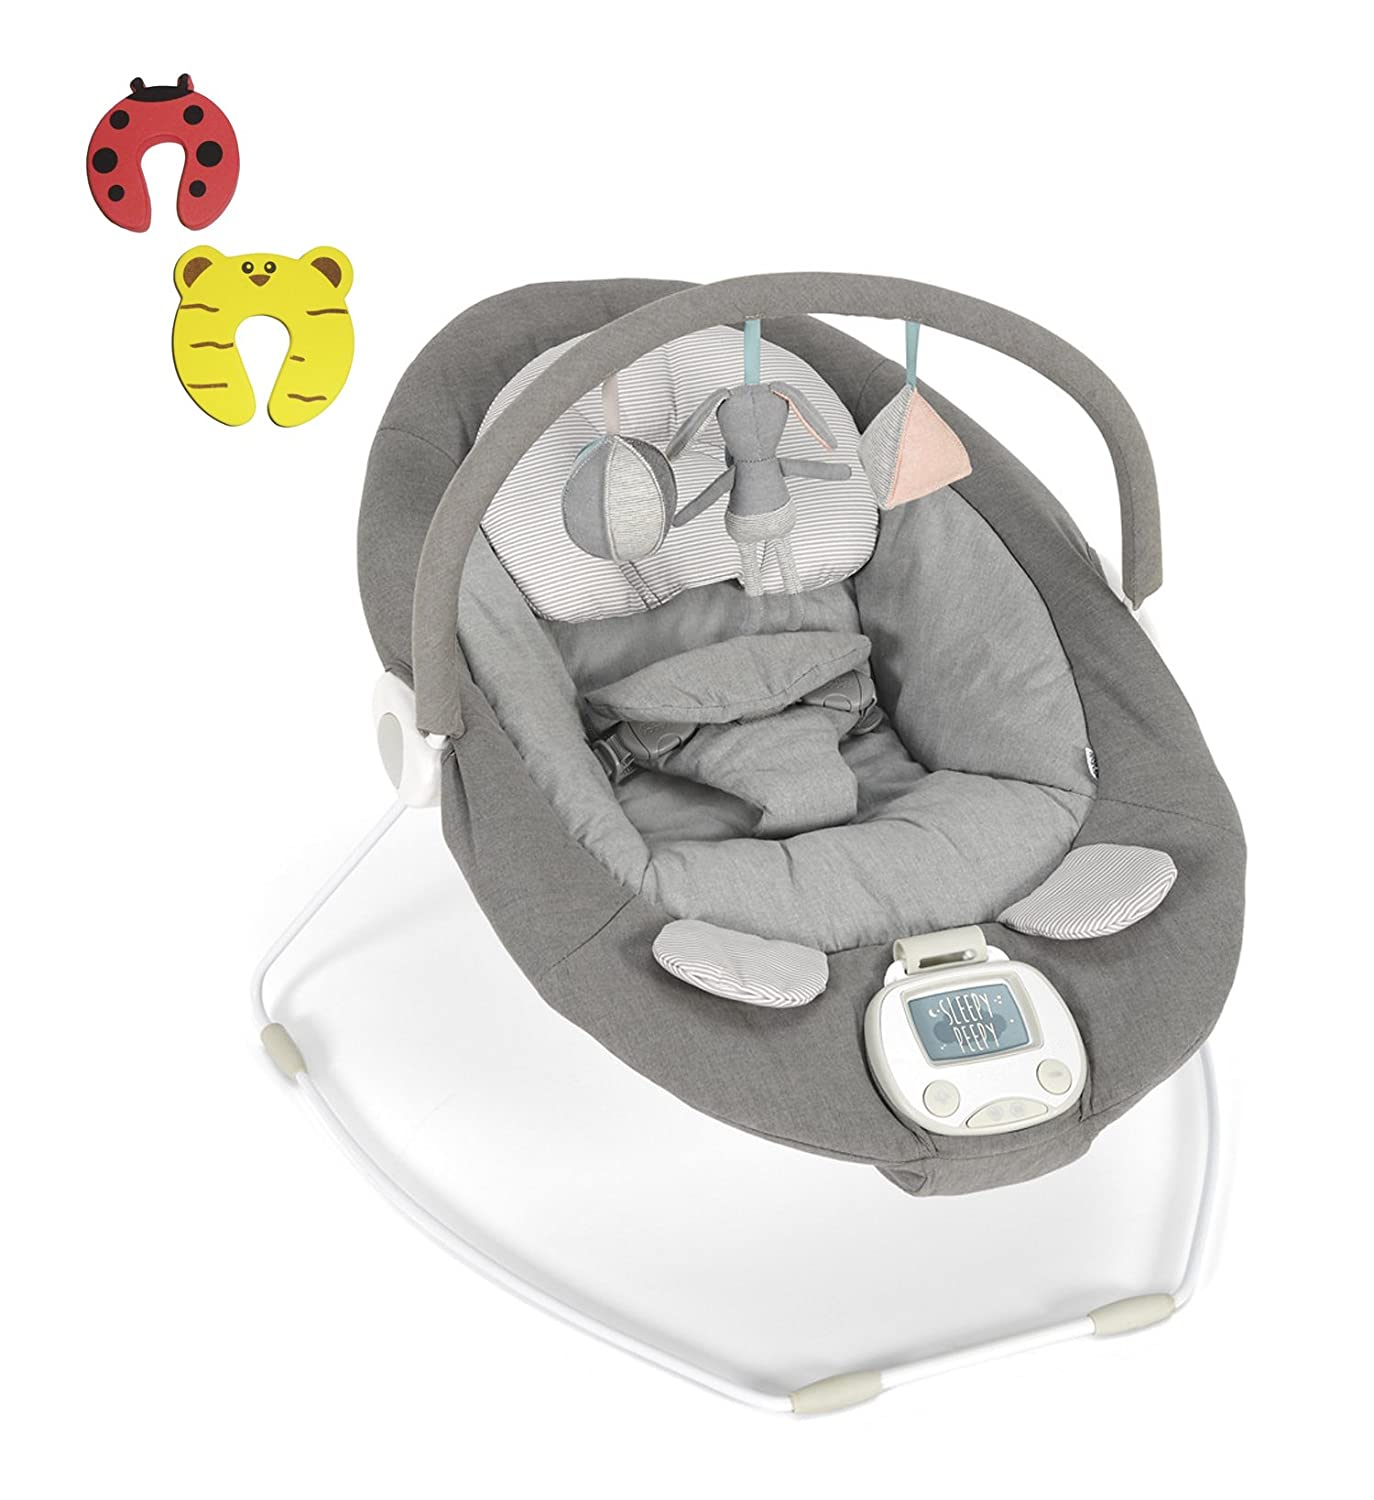 Mamas & Papas Baby Vibrating Musical Apollo Bouncer Grey Melange NEW 2018 DESIGN Chair - Suitable From 0-6 Months - Incs 2 Door Stoppers Baby Best Buys Apolloe Melange Grey